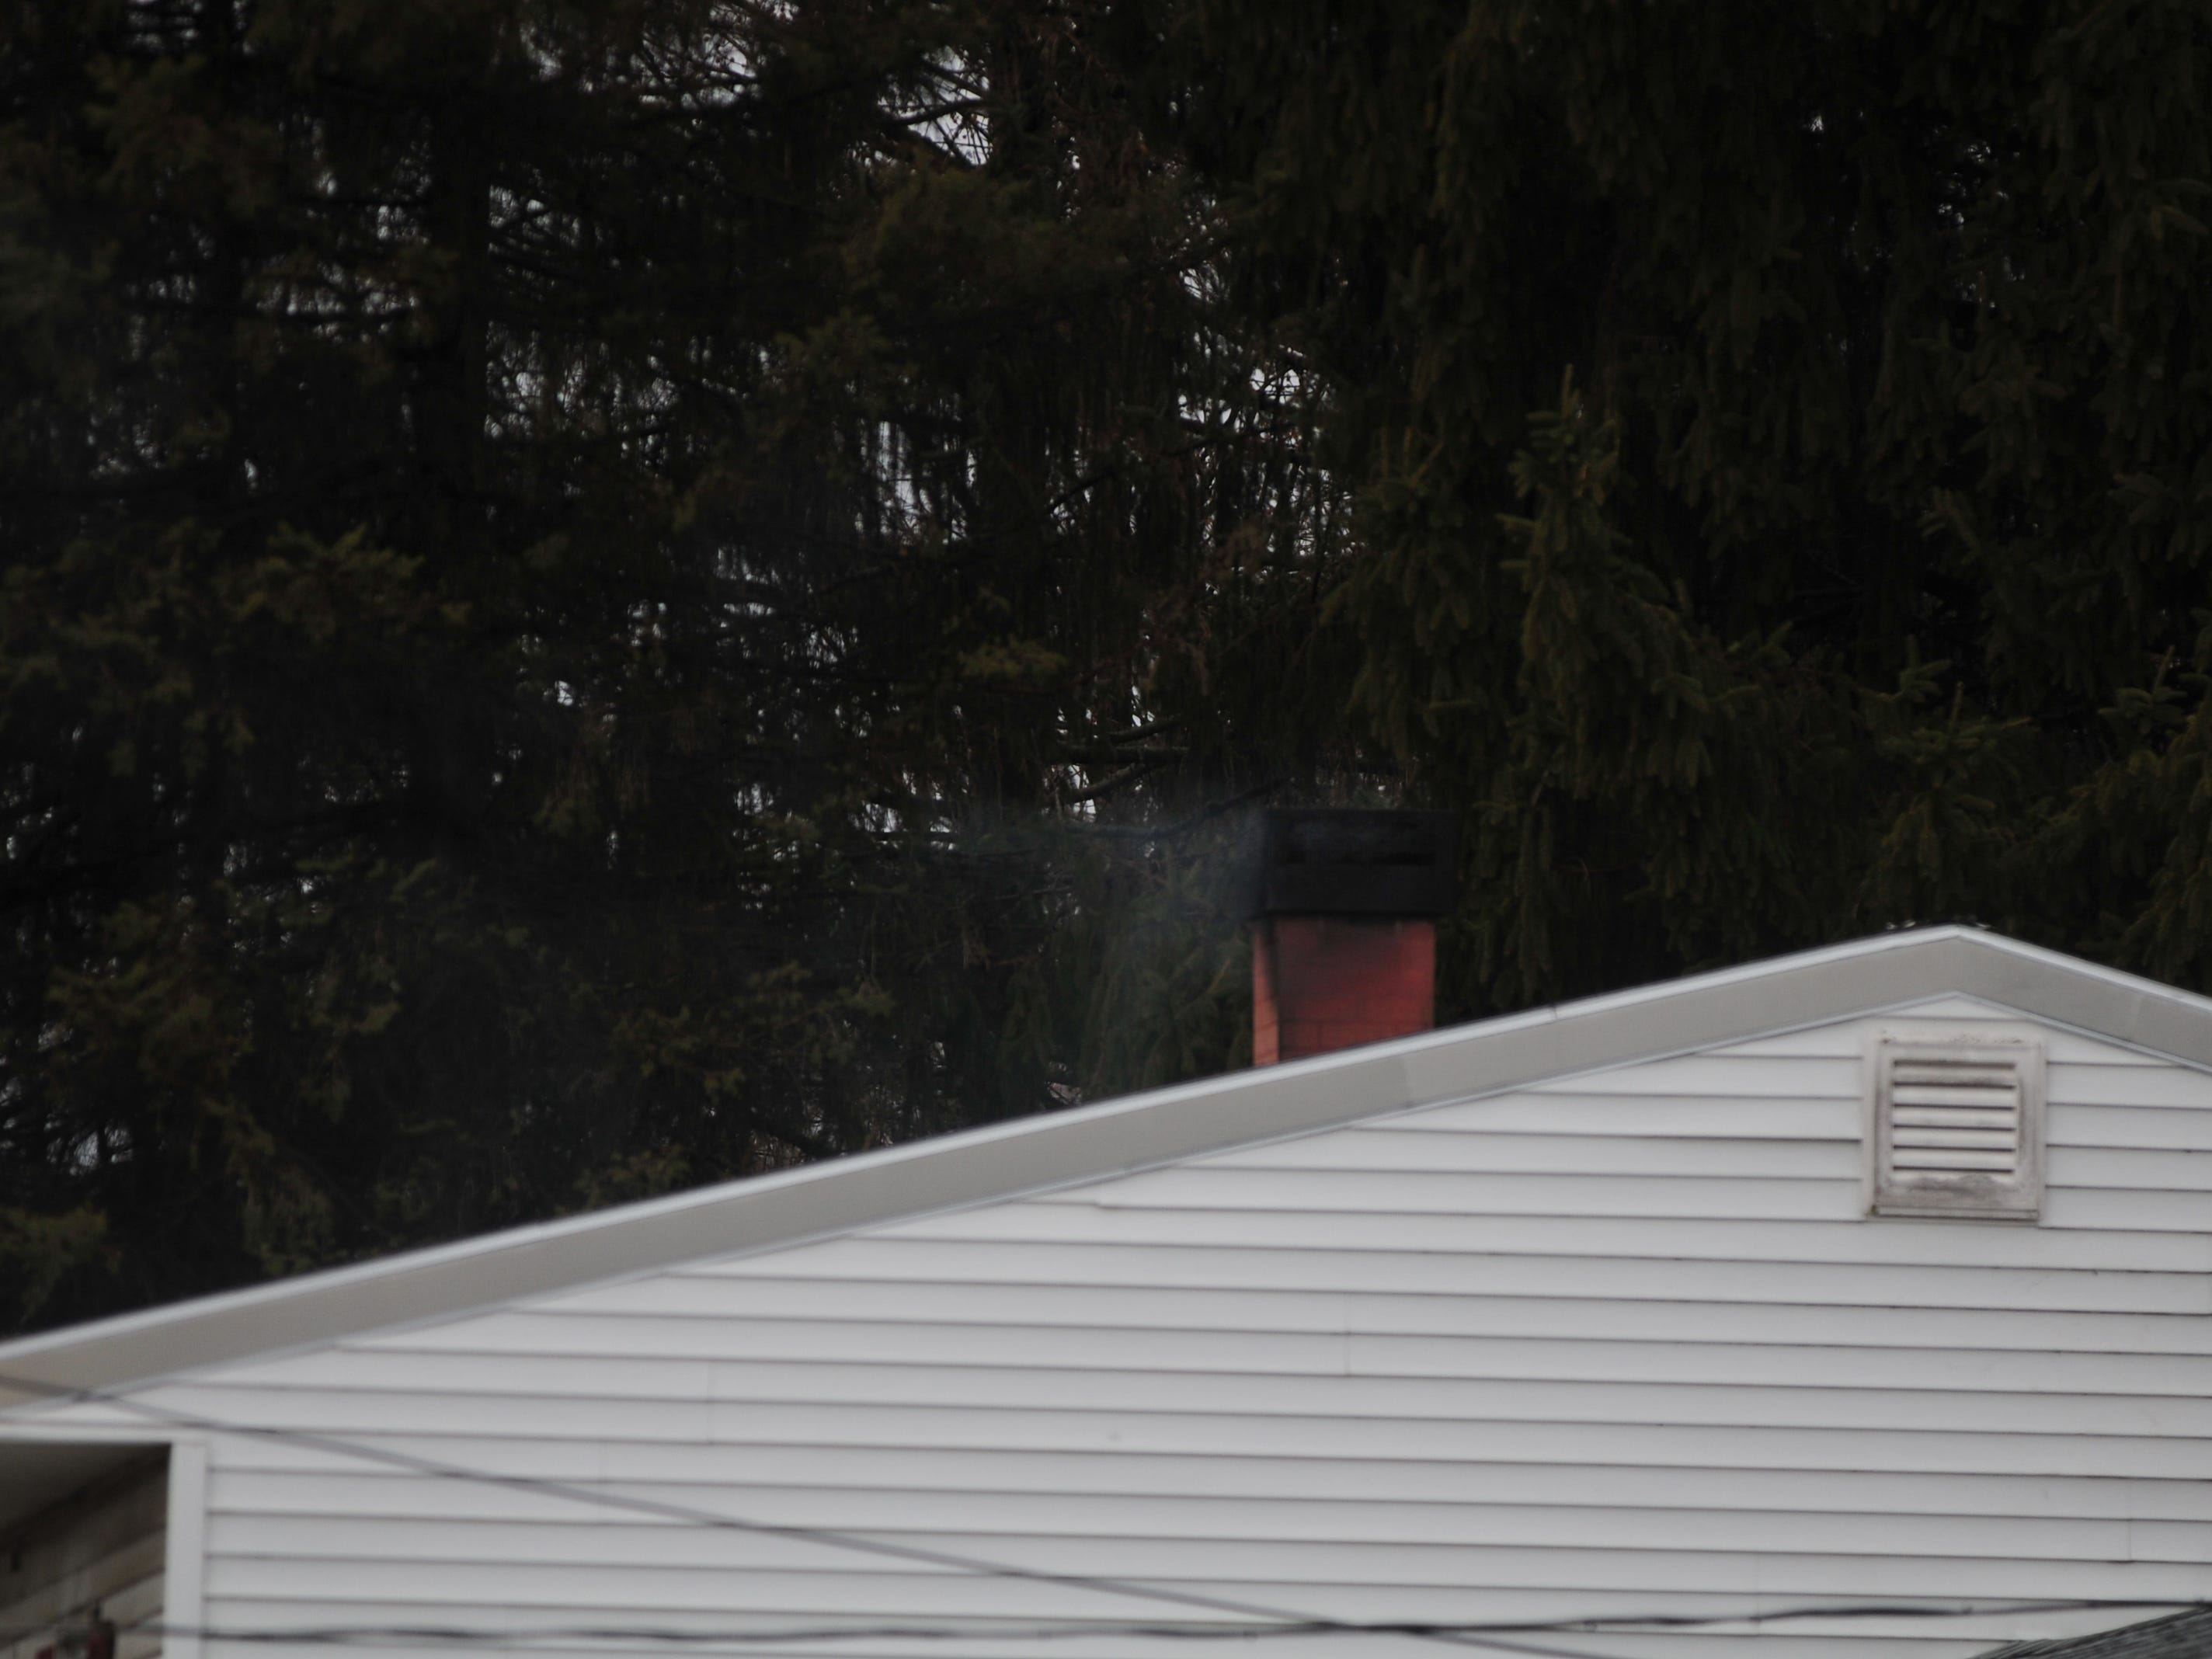 Creosote inside a chimney caught fire about 9:30 a.m. Thursday at a residence in the 6800 block of U.S. 40 West.